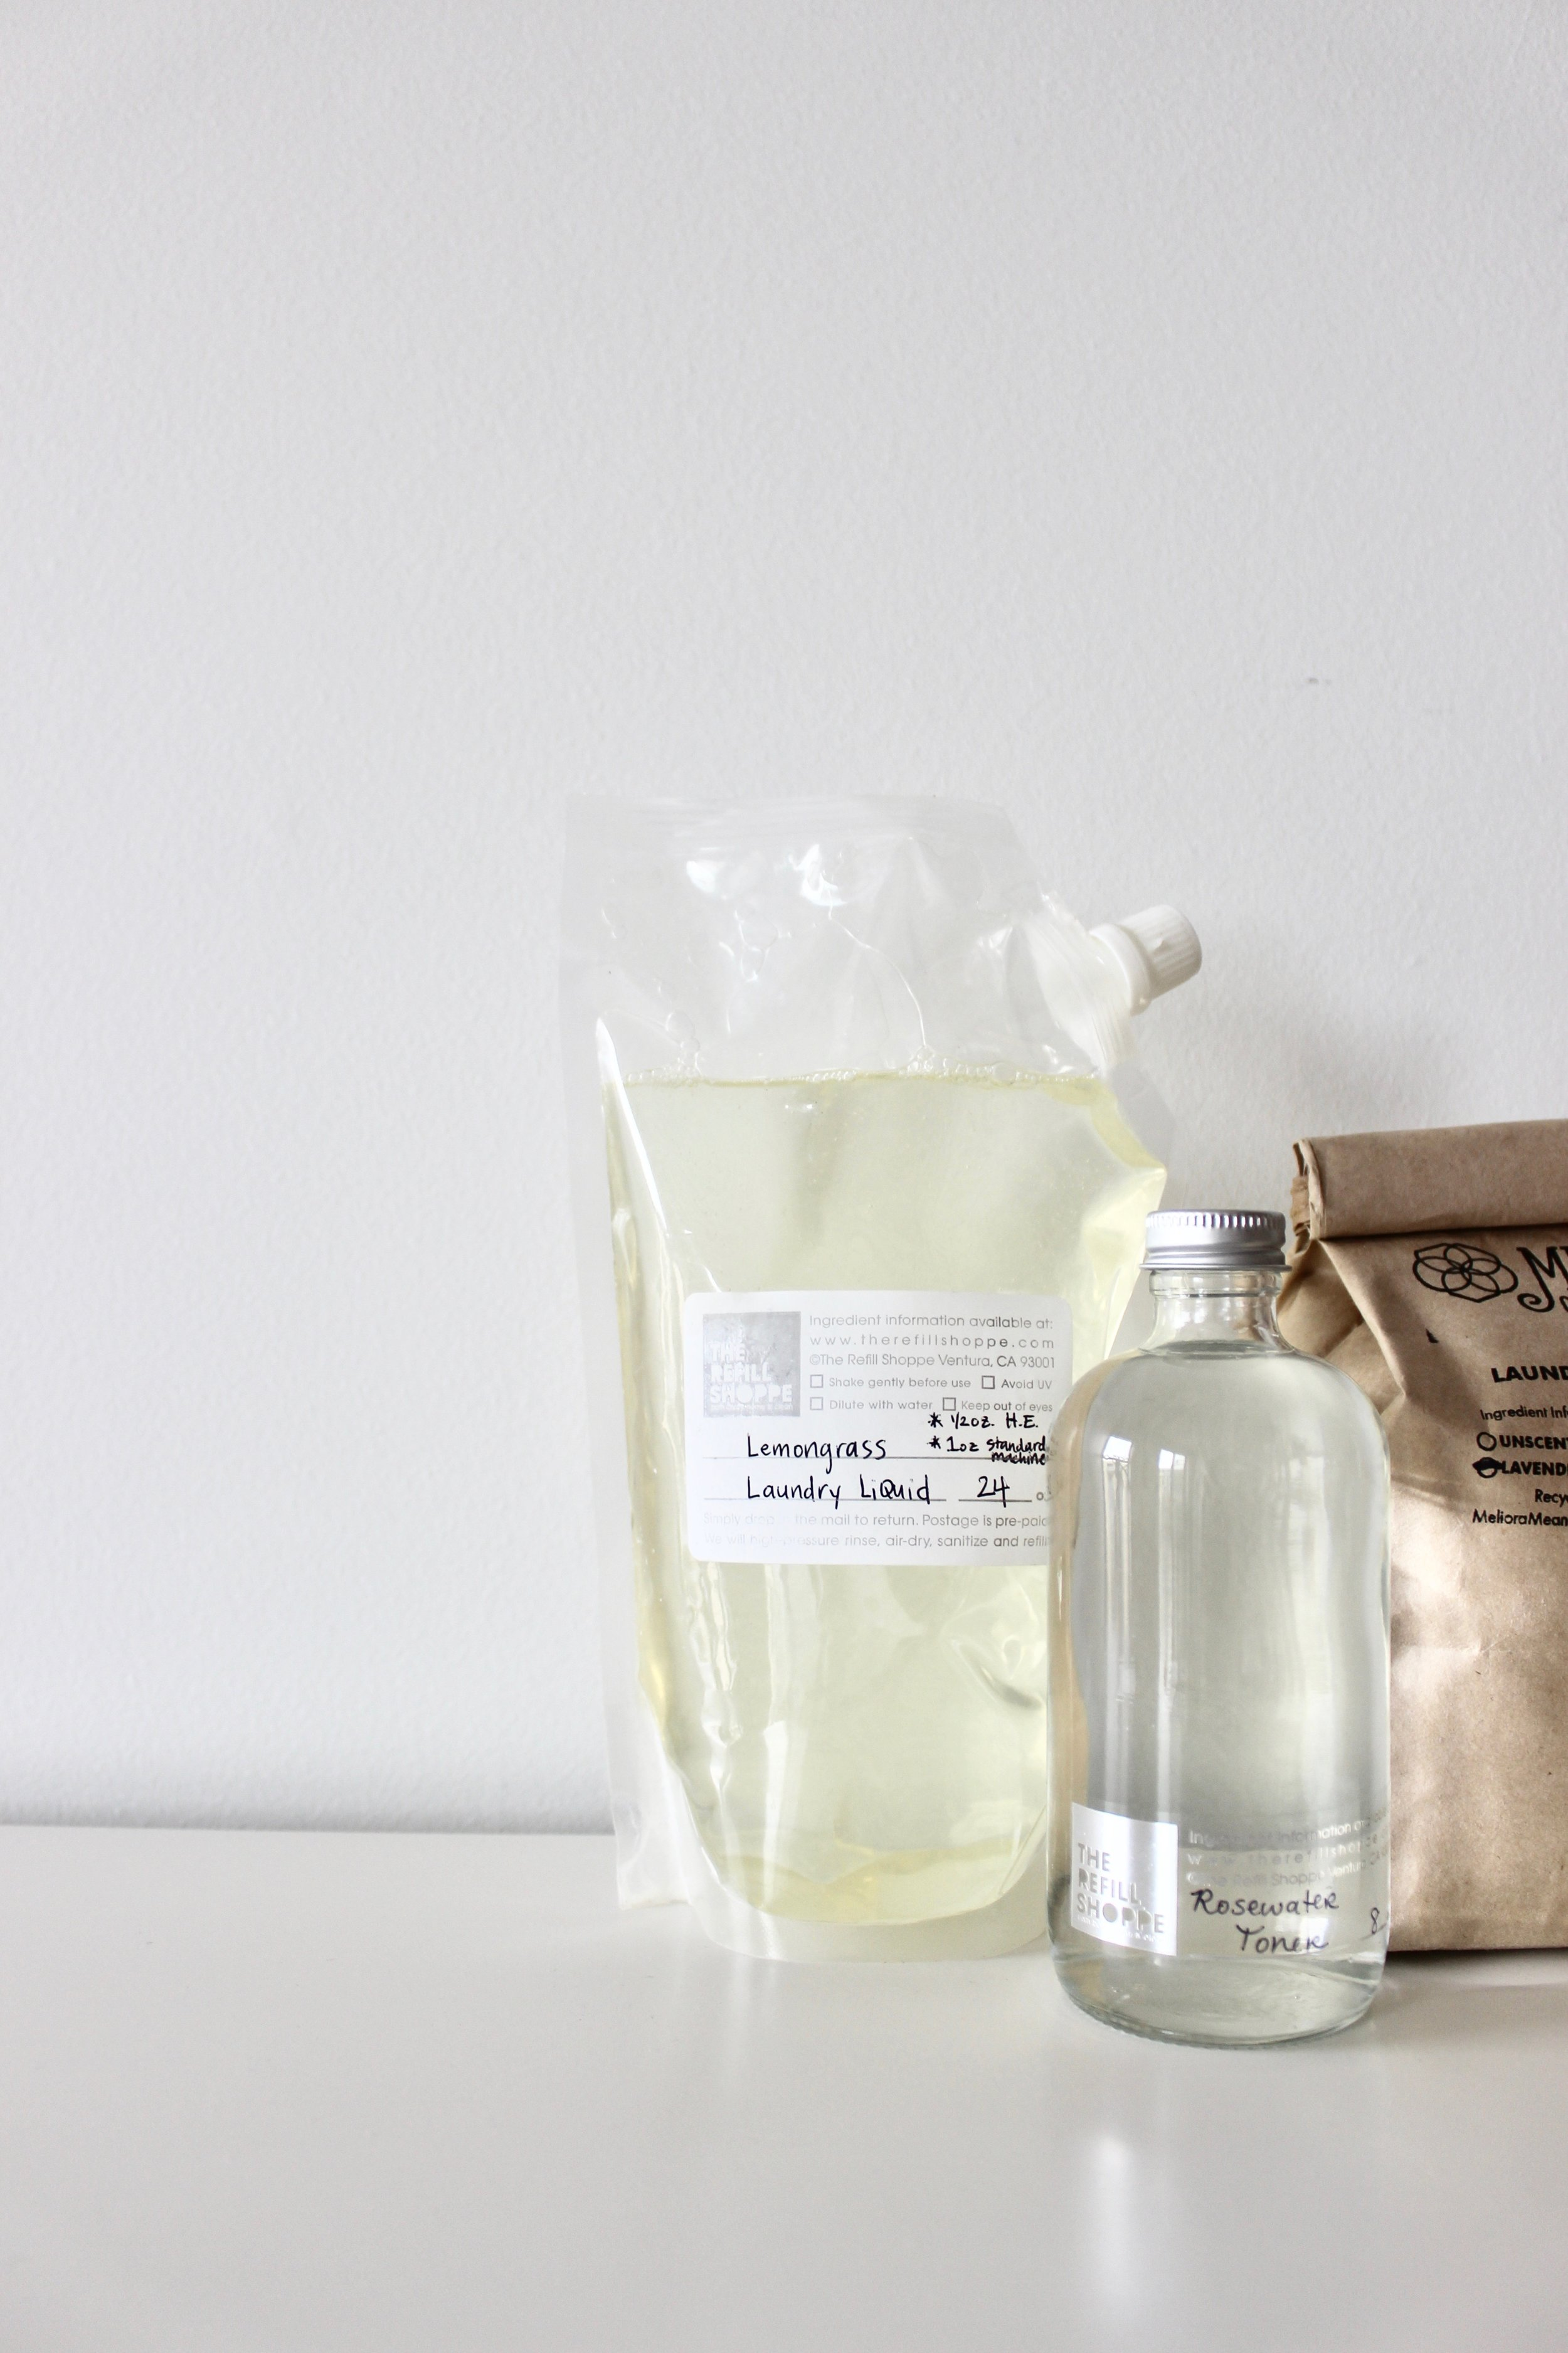 Online bulk directory for purchasing refillable, zero waste beauty and cleaning products   Litterless